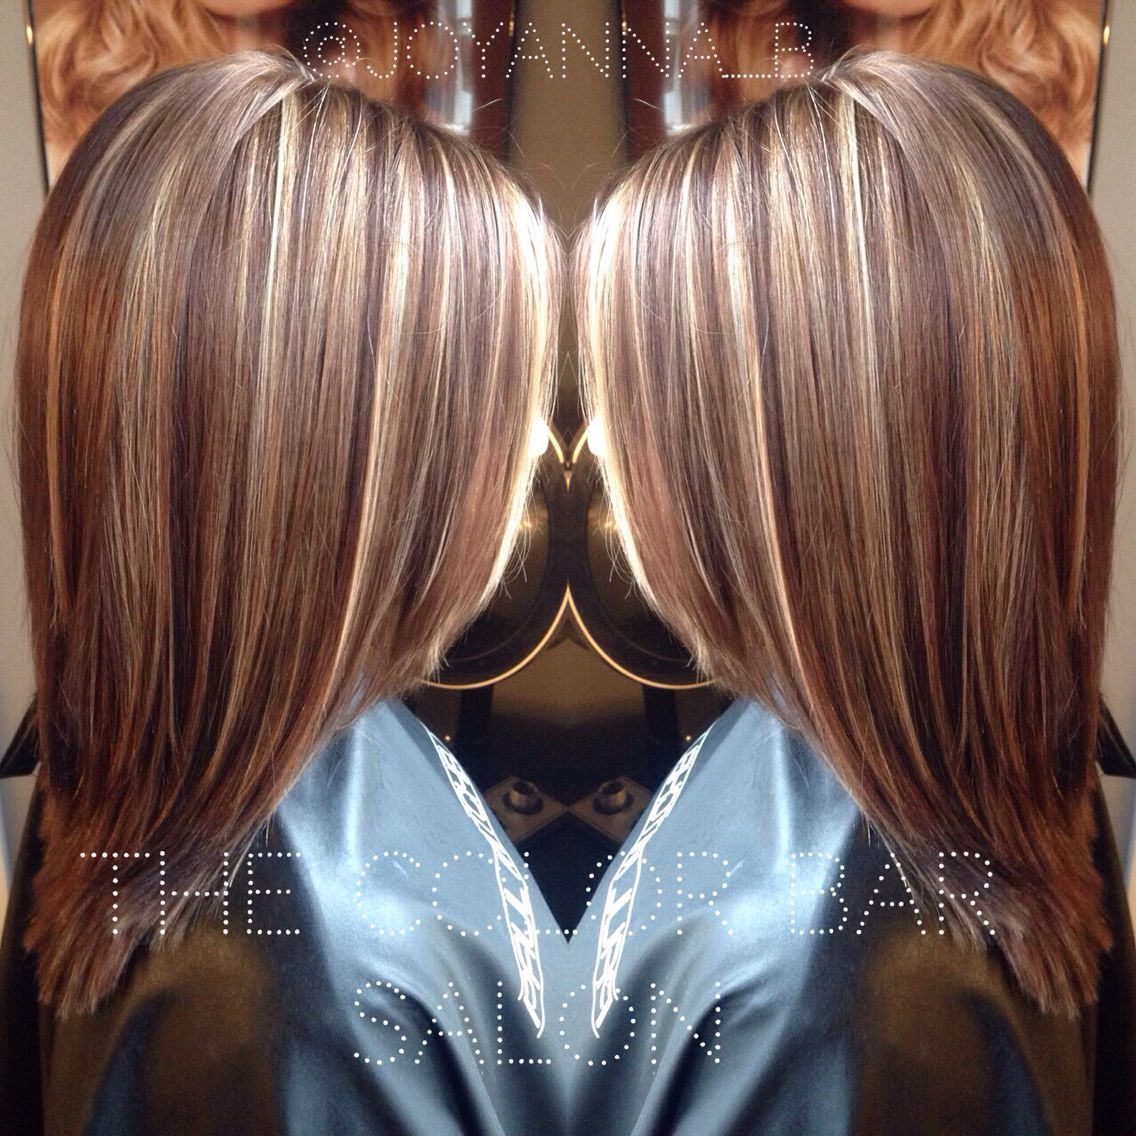 Coiffure Cheveux Mi Long Meche Blonde Caramel And Platinum Highlights Traditional Highlight